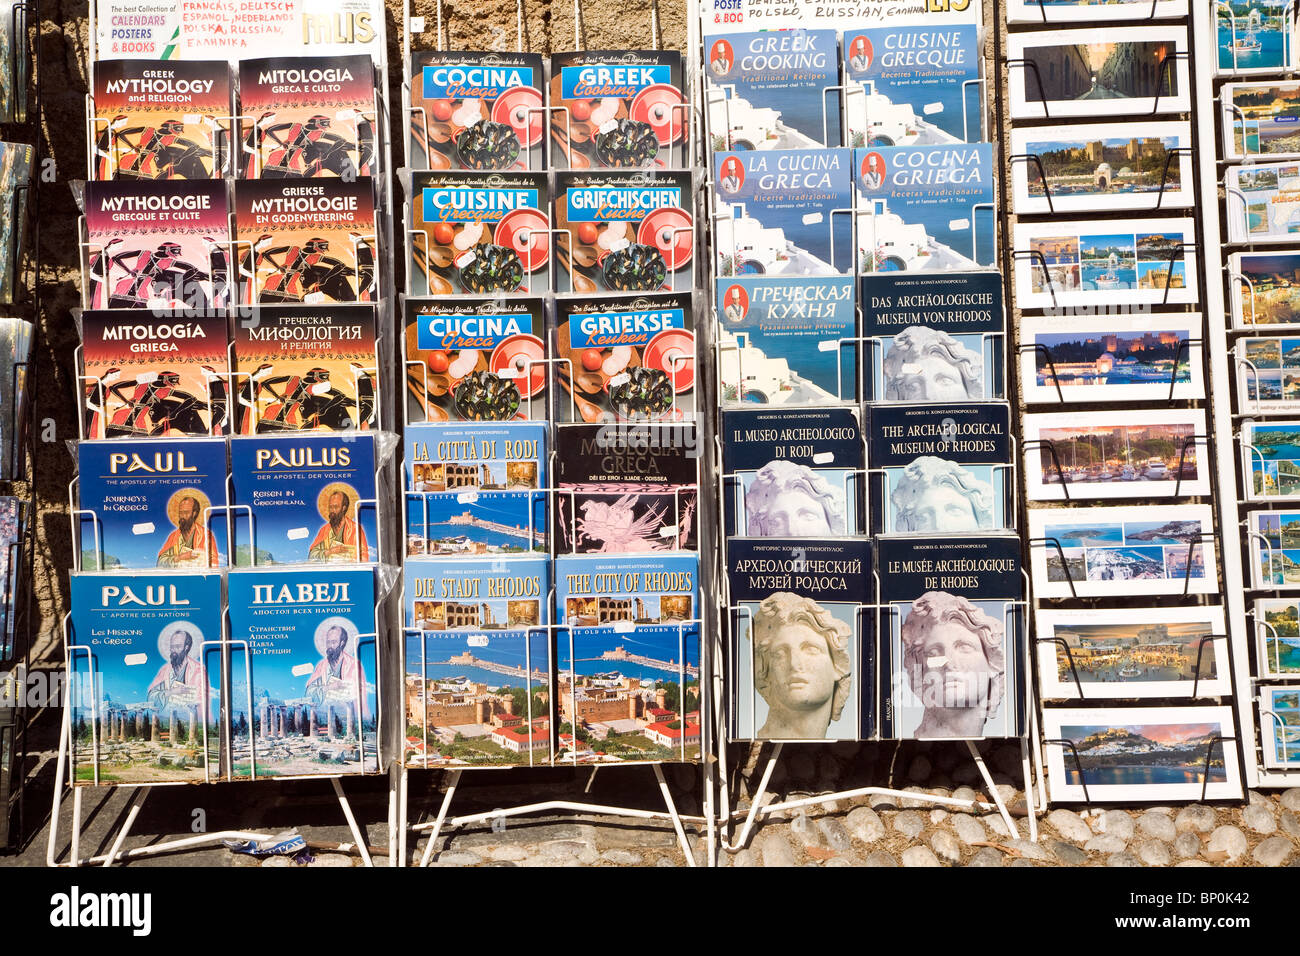 Postcards and guide books in display rack, Rhodes, Greece - Stock Image